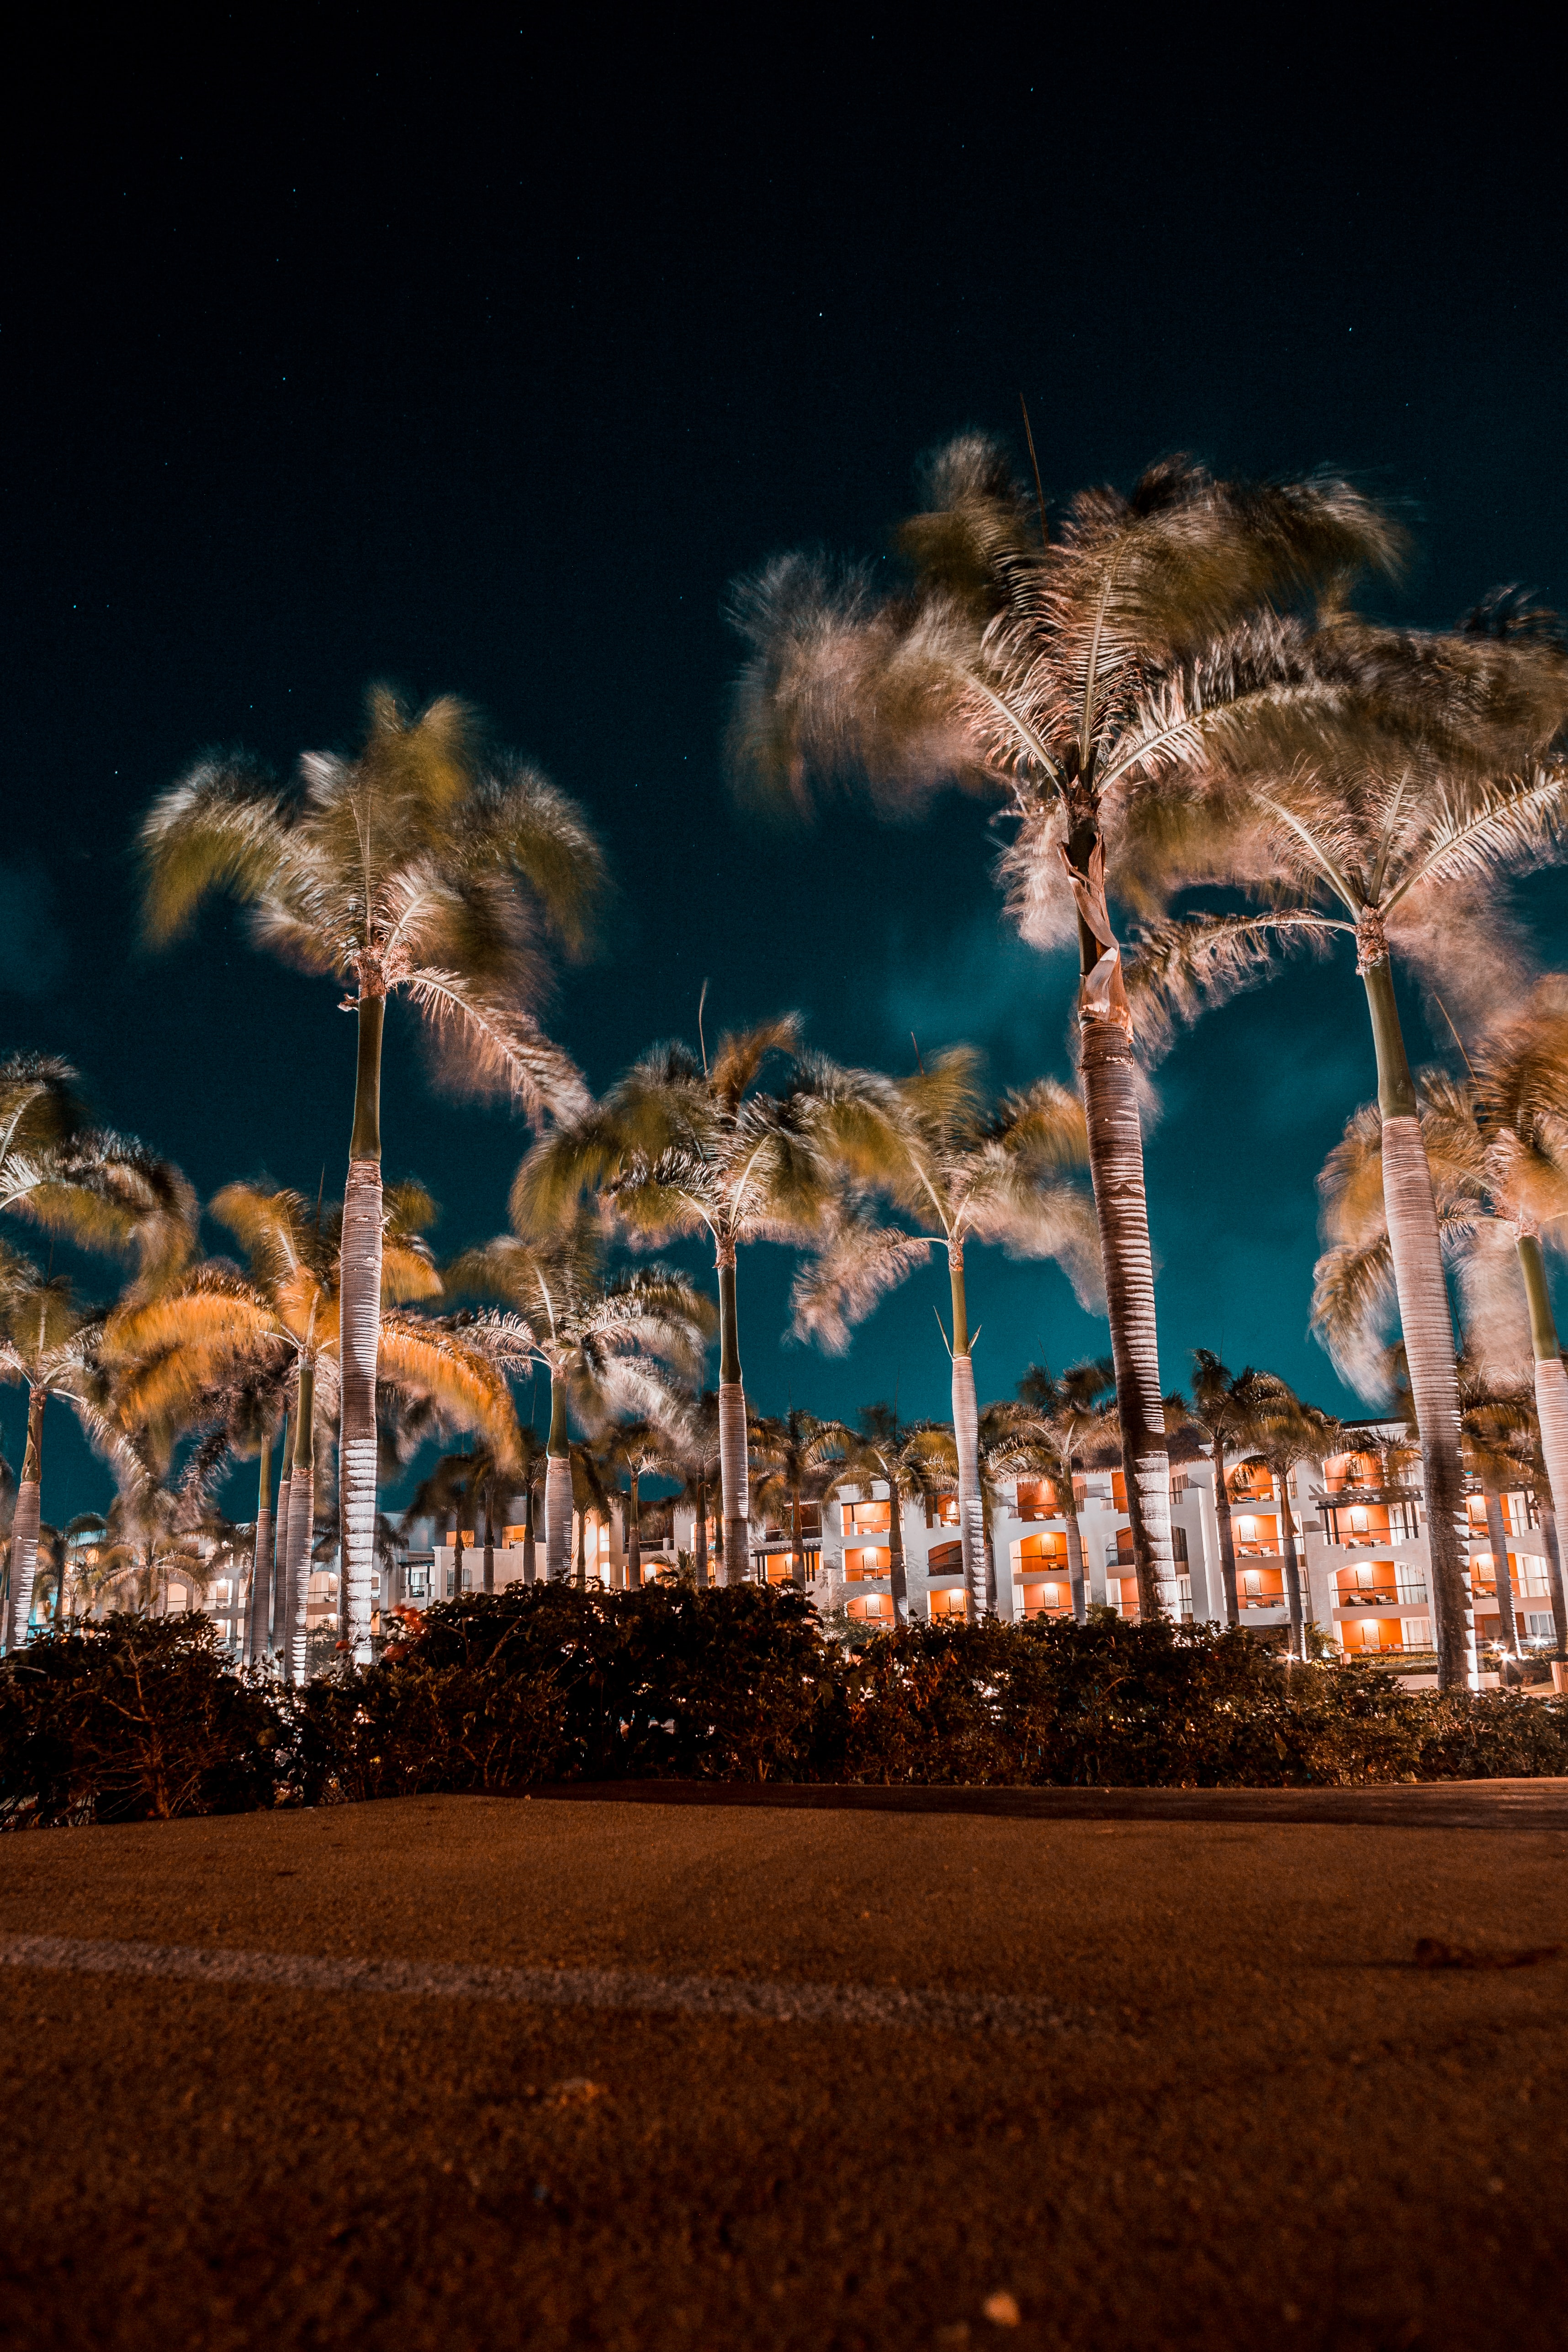 palm trees during nighttime